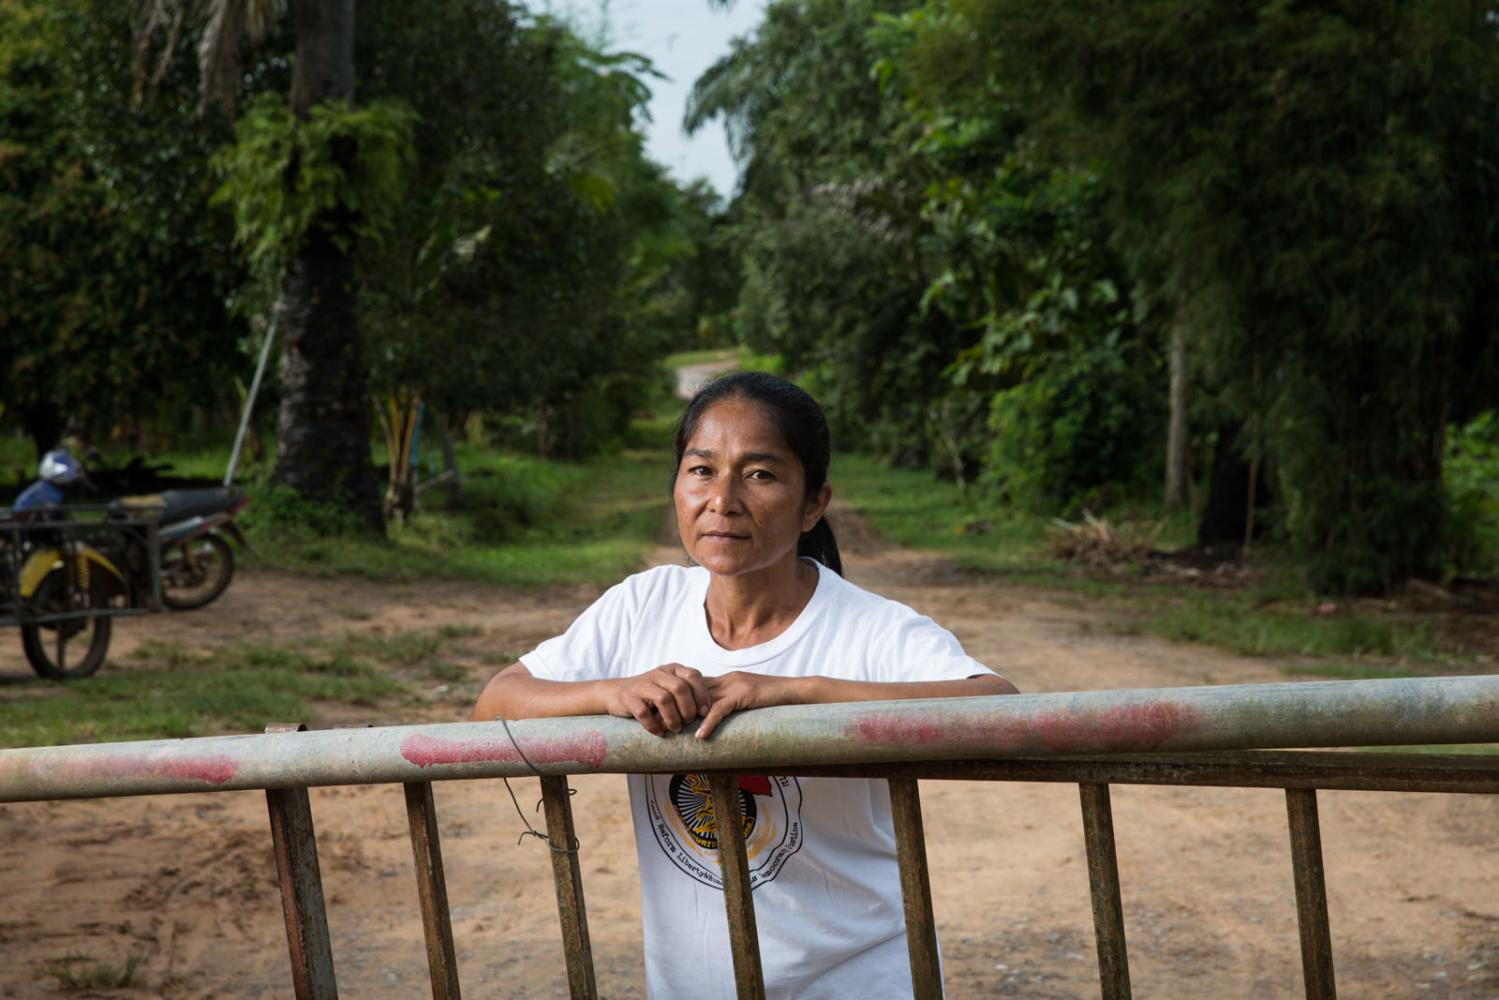 Chusri Oranakit, a member of Southern Peasants' Federation of Thailand (SPFT) a land rights organisation working in Surat Thani and Krabi Provinces, Thailand.